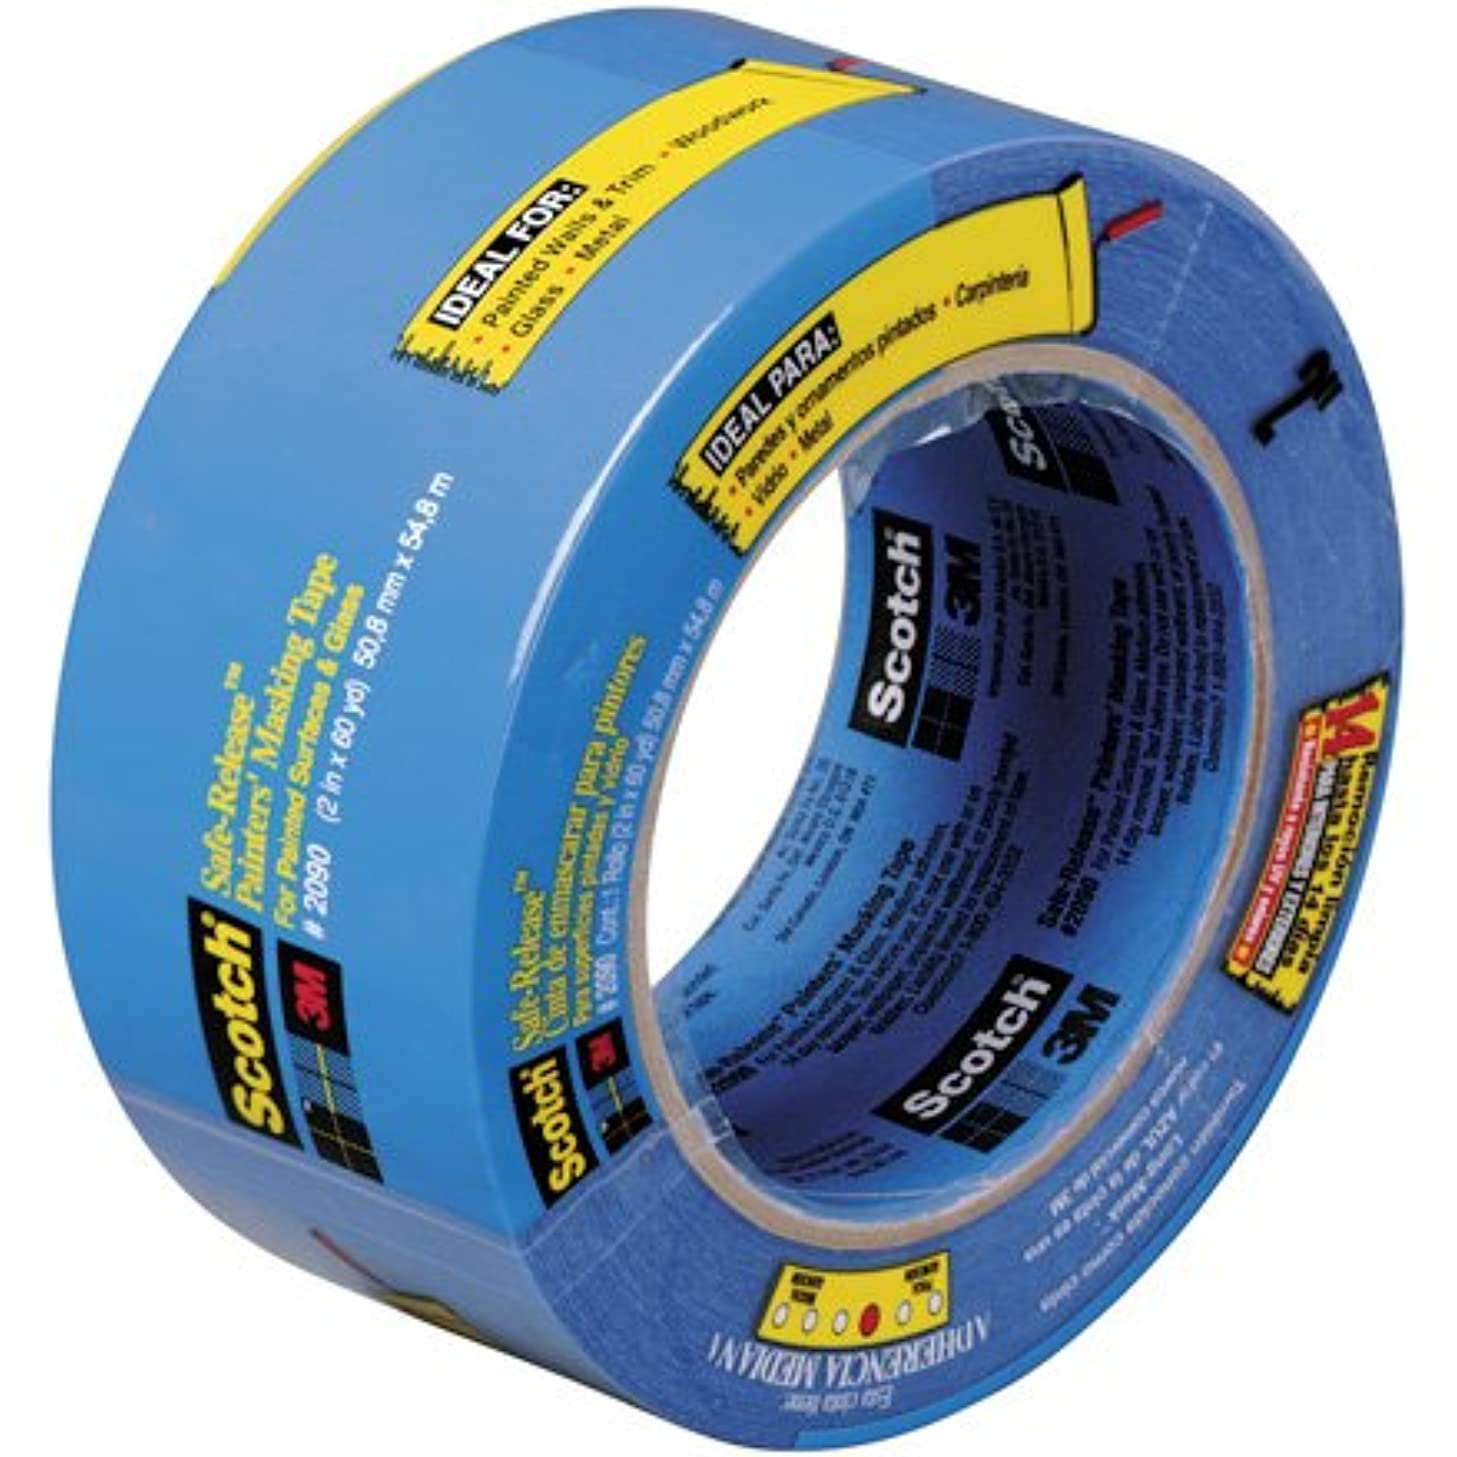 3M Scotch 2090 Crepe Paper Masking Tape, 200 Degrees F Performance Temperature, 24 lbs/in Tensile Strength, 60 yds Length x 3/4